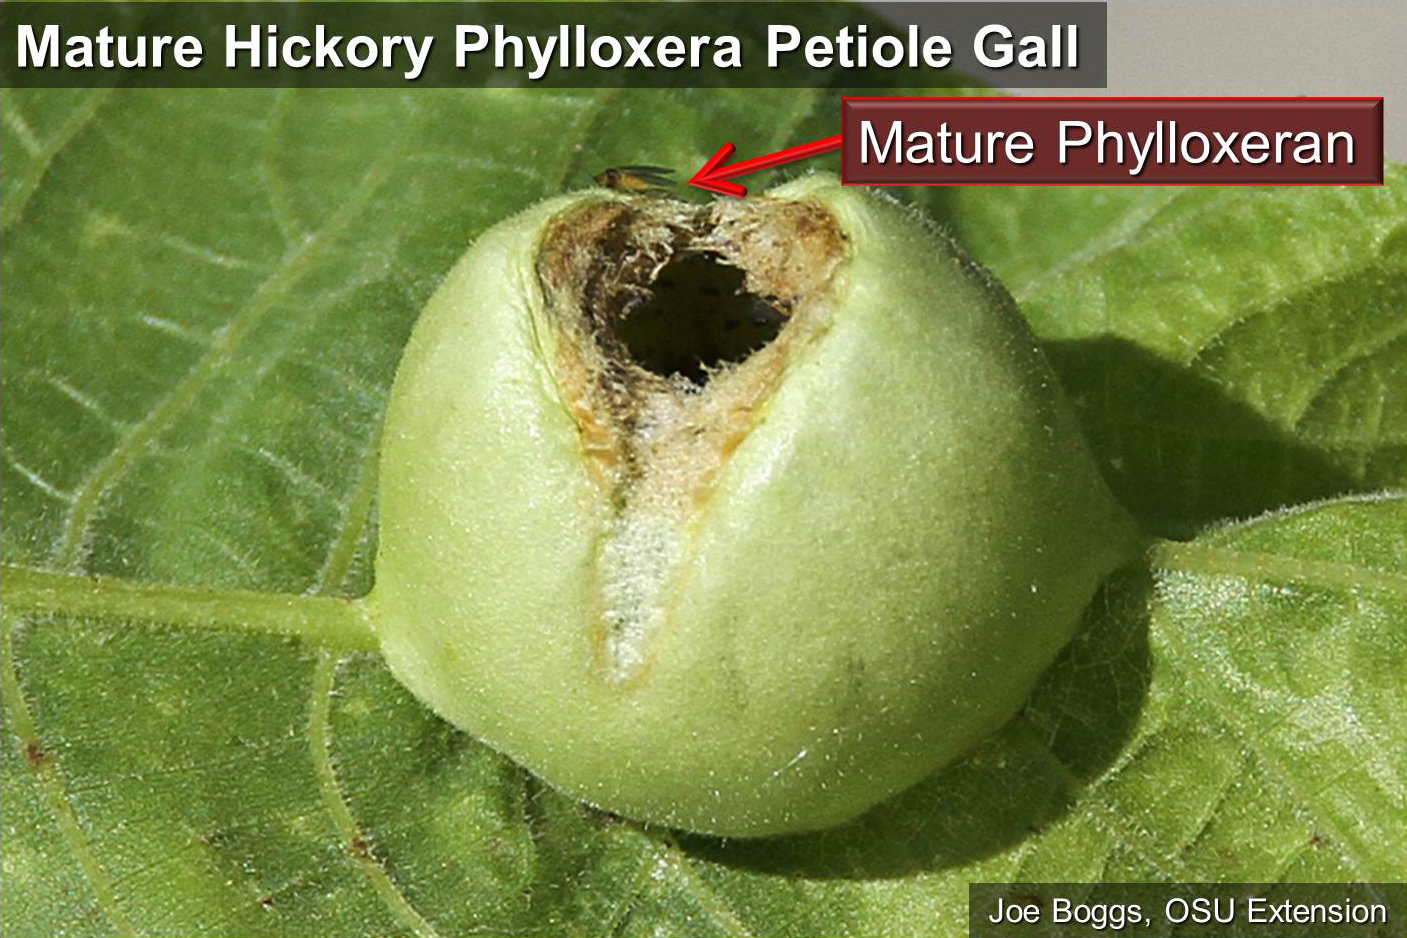 Mature Hickory Petiole Gall with Emerged Adult Phylloxeran